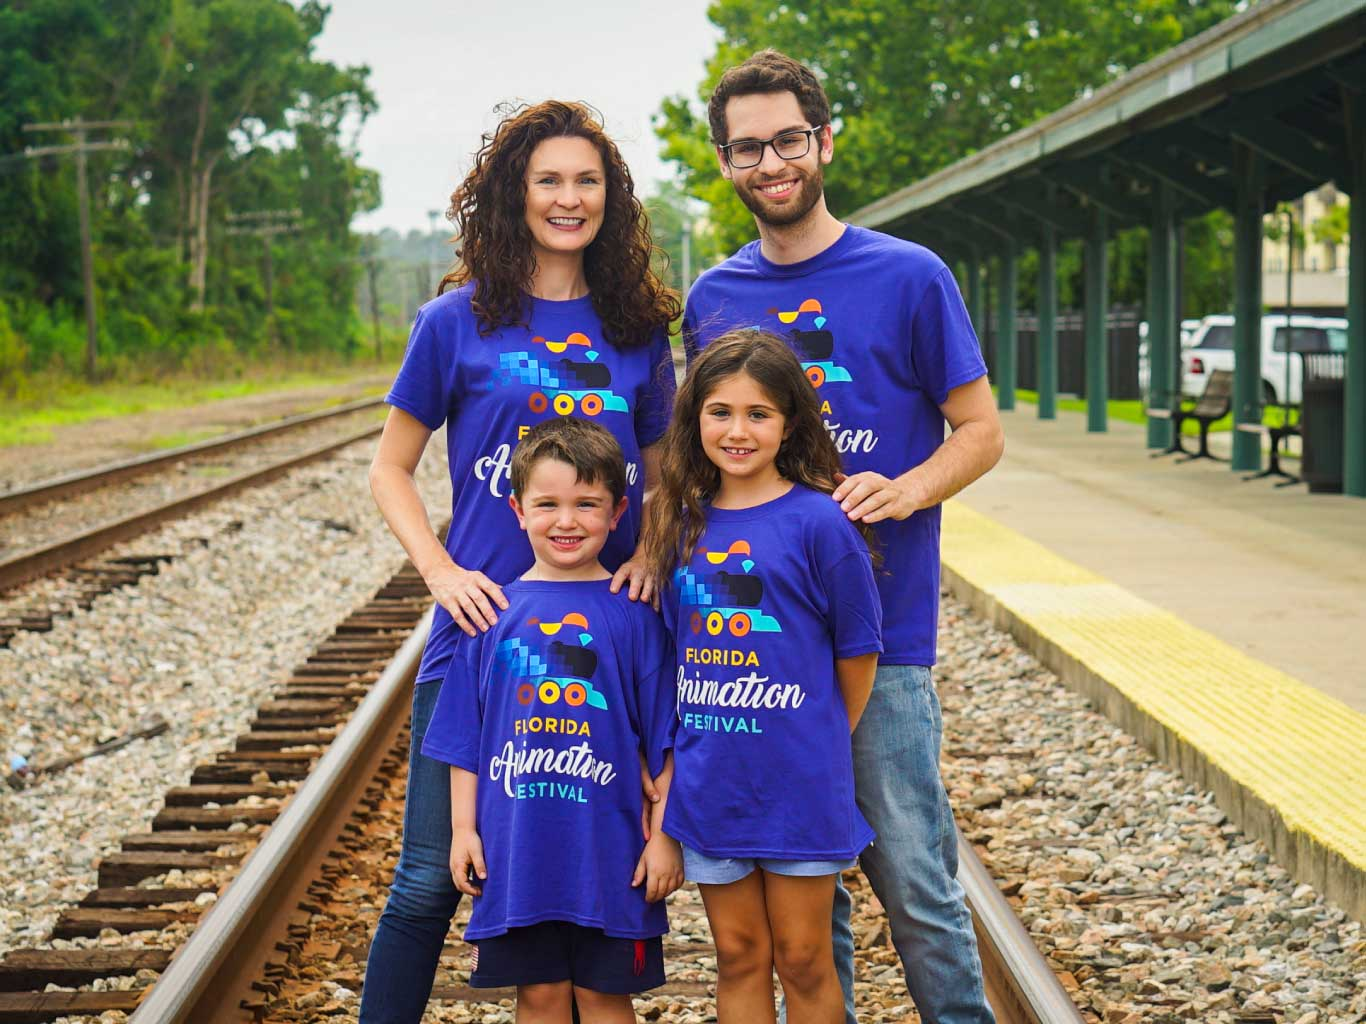 Young family standing on train tracks; wearing Florida Animation Festival t-shirts.